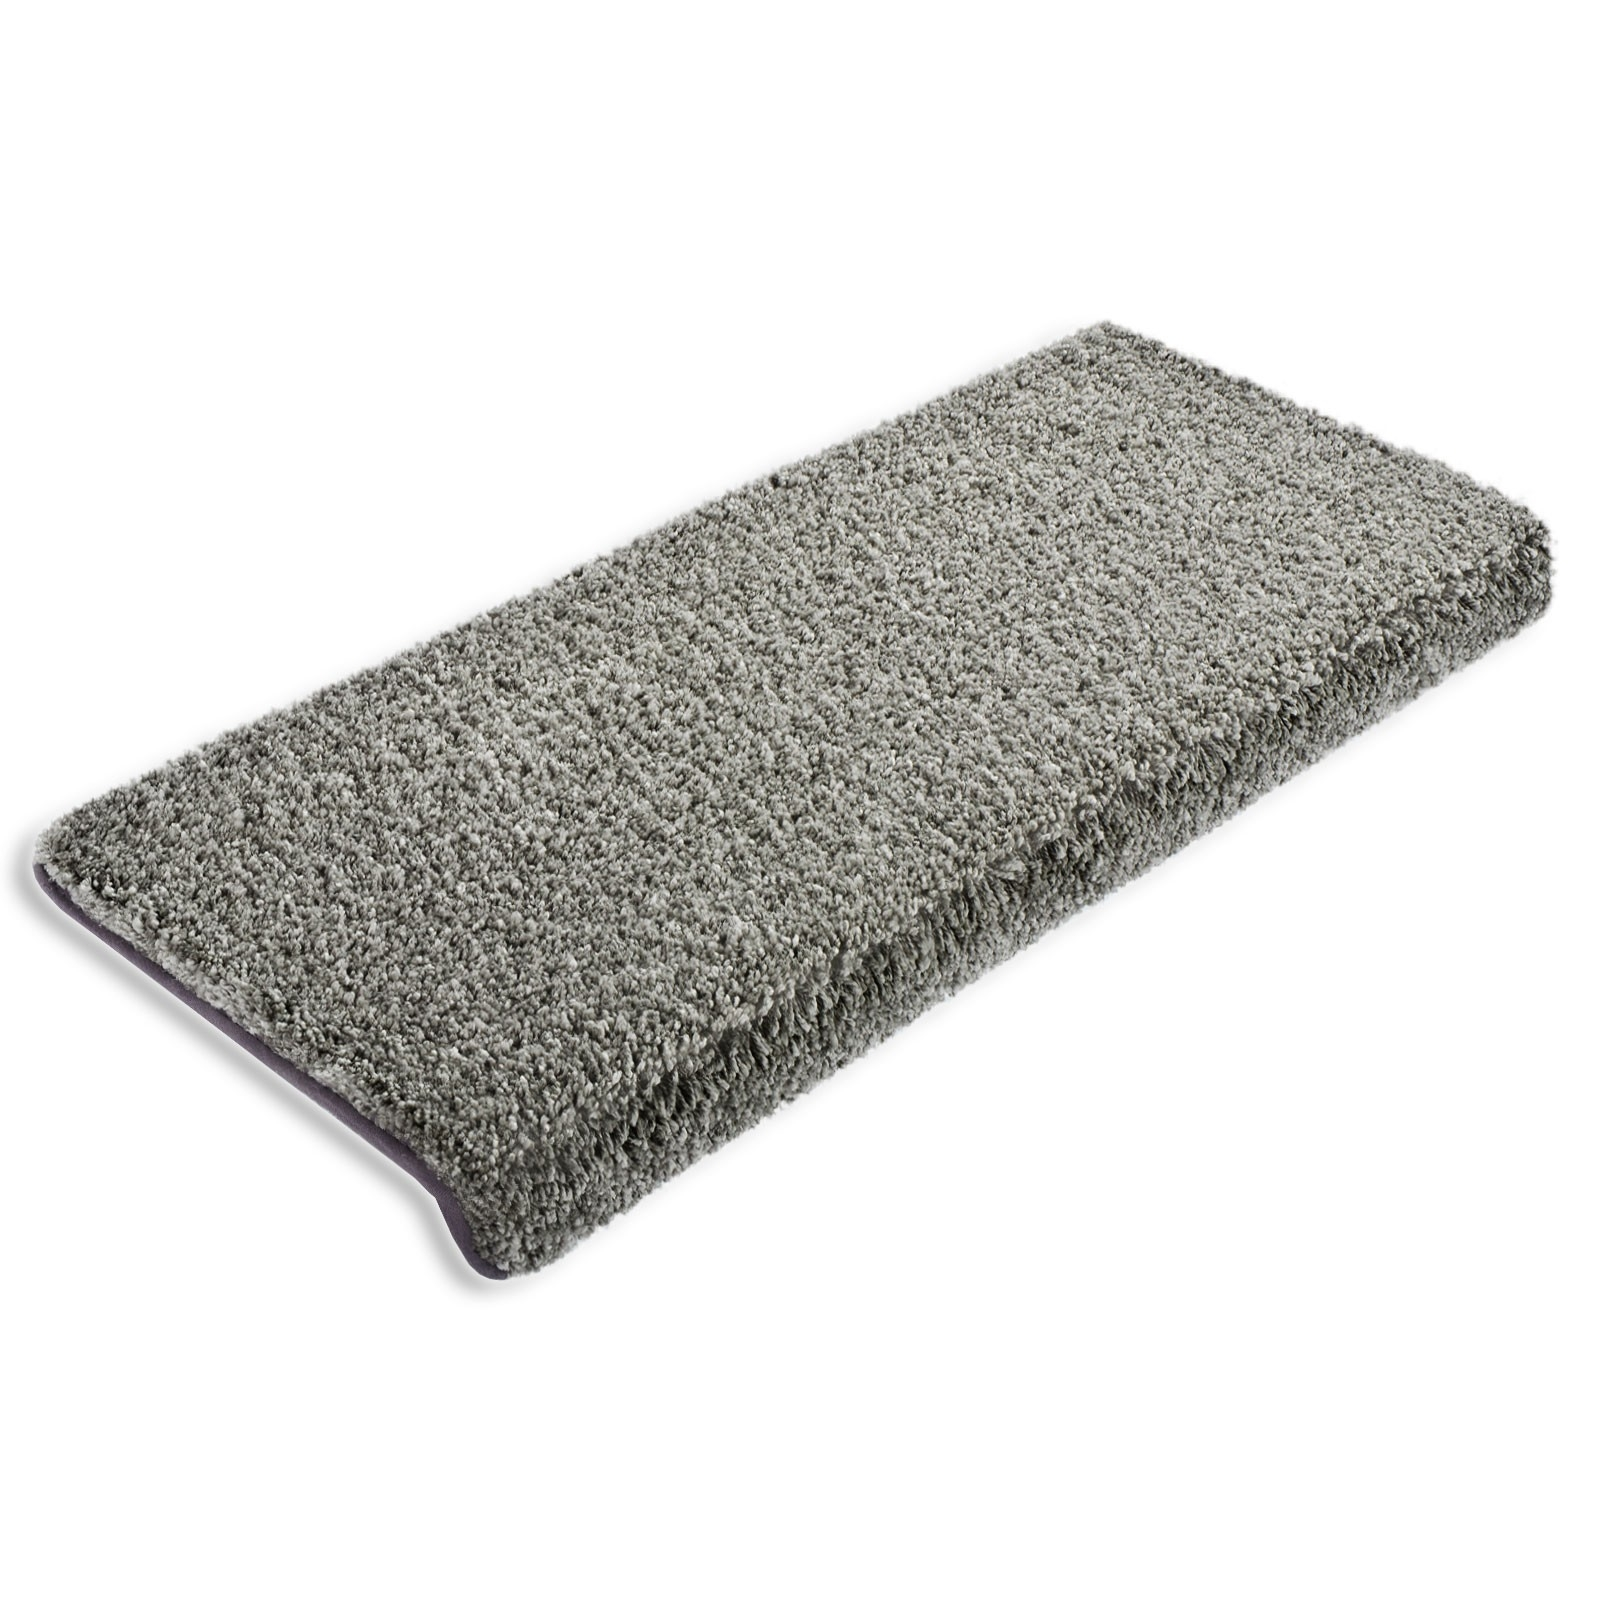 Stair Covers Las Vegas Rectangular Available In 8 Colours Intended For Rectangular Stair Treads (View 15 of 15)